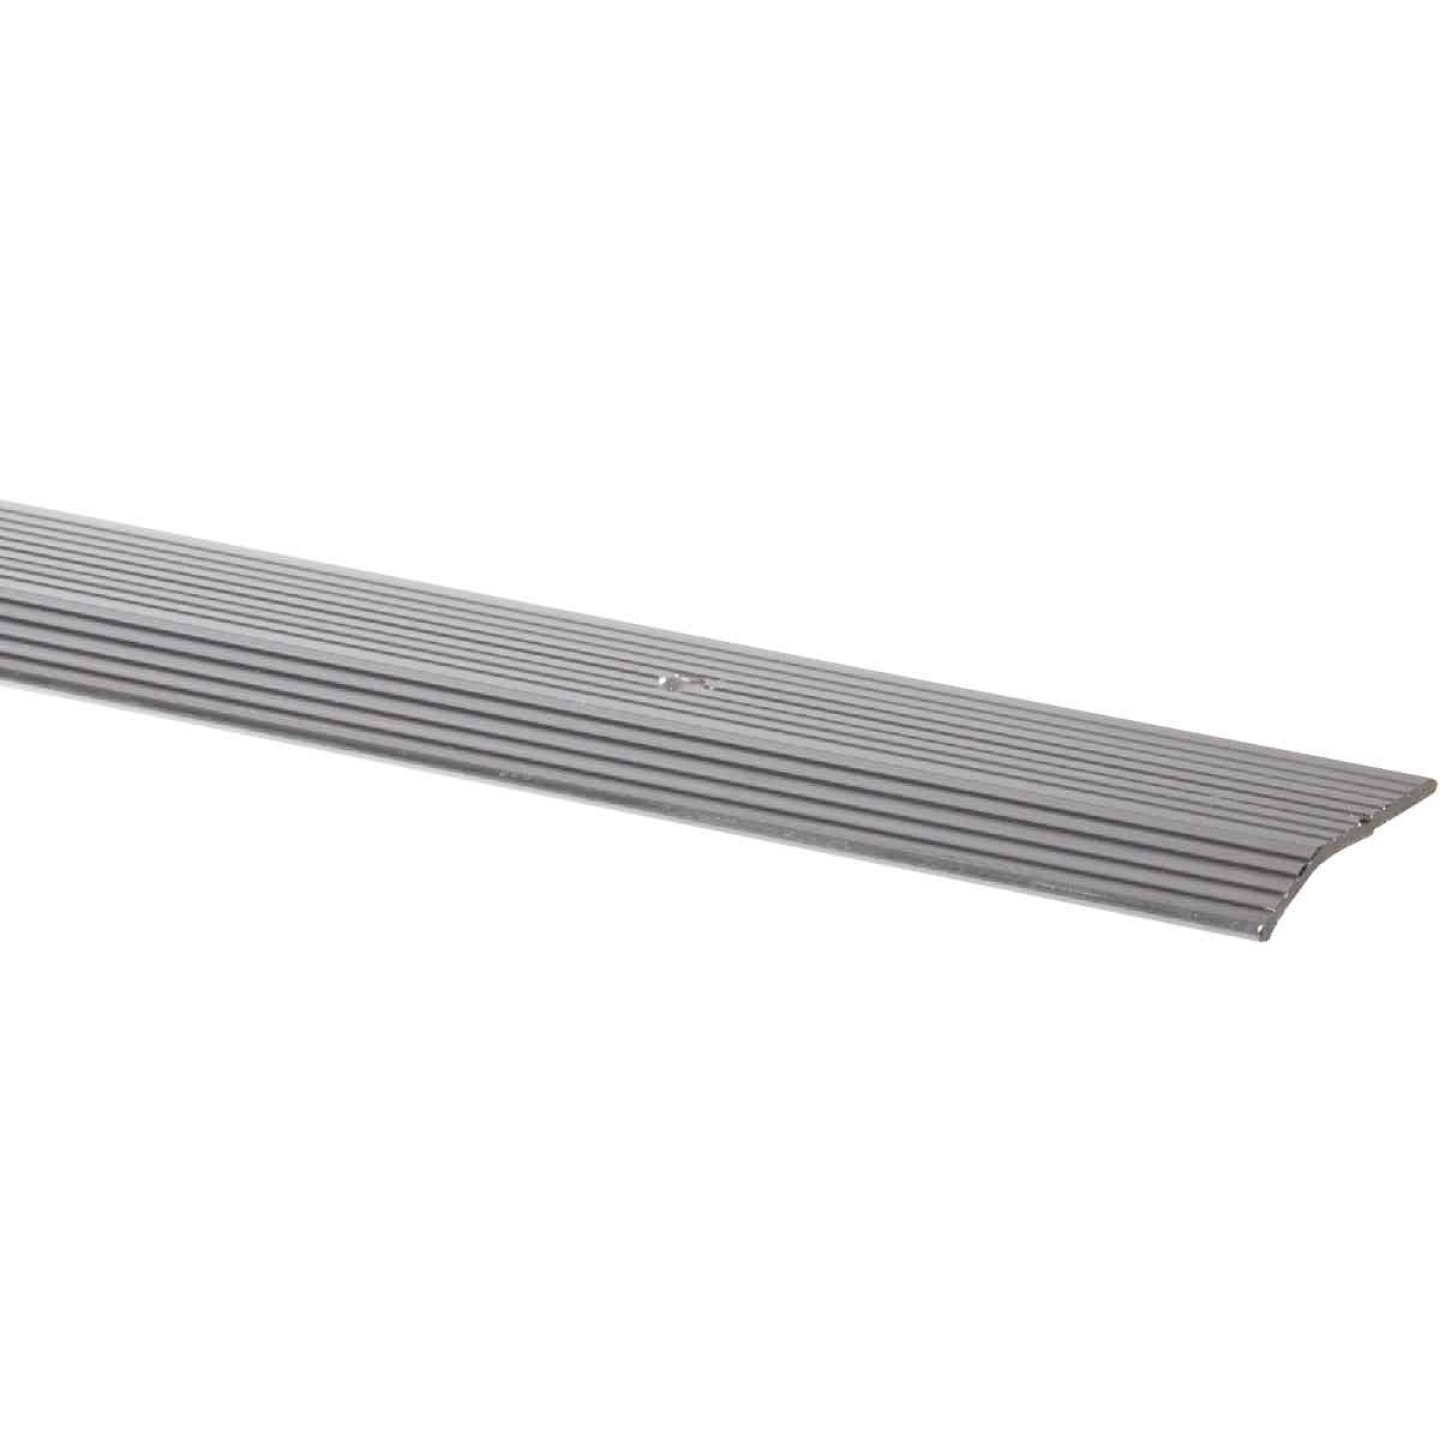 M-D Satin Silver Fluted 1-3/8 In. x 3 Ft. Aluminum Carpet Trim Bar, Wide Image 1